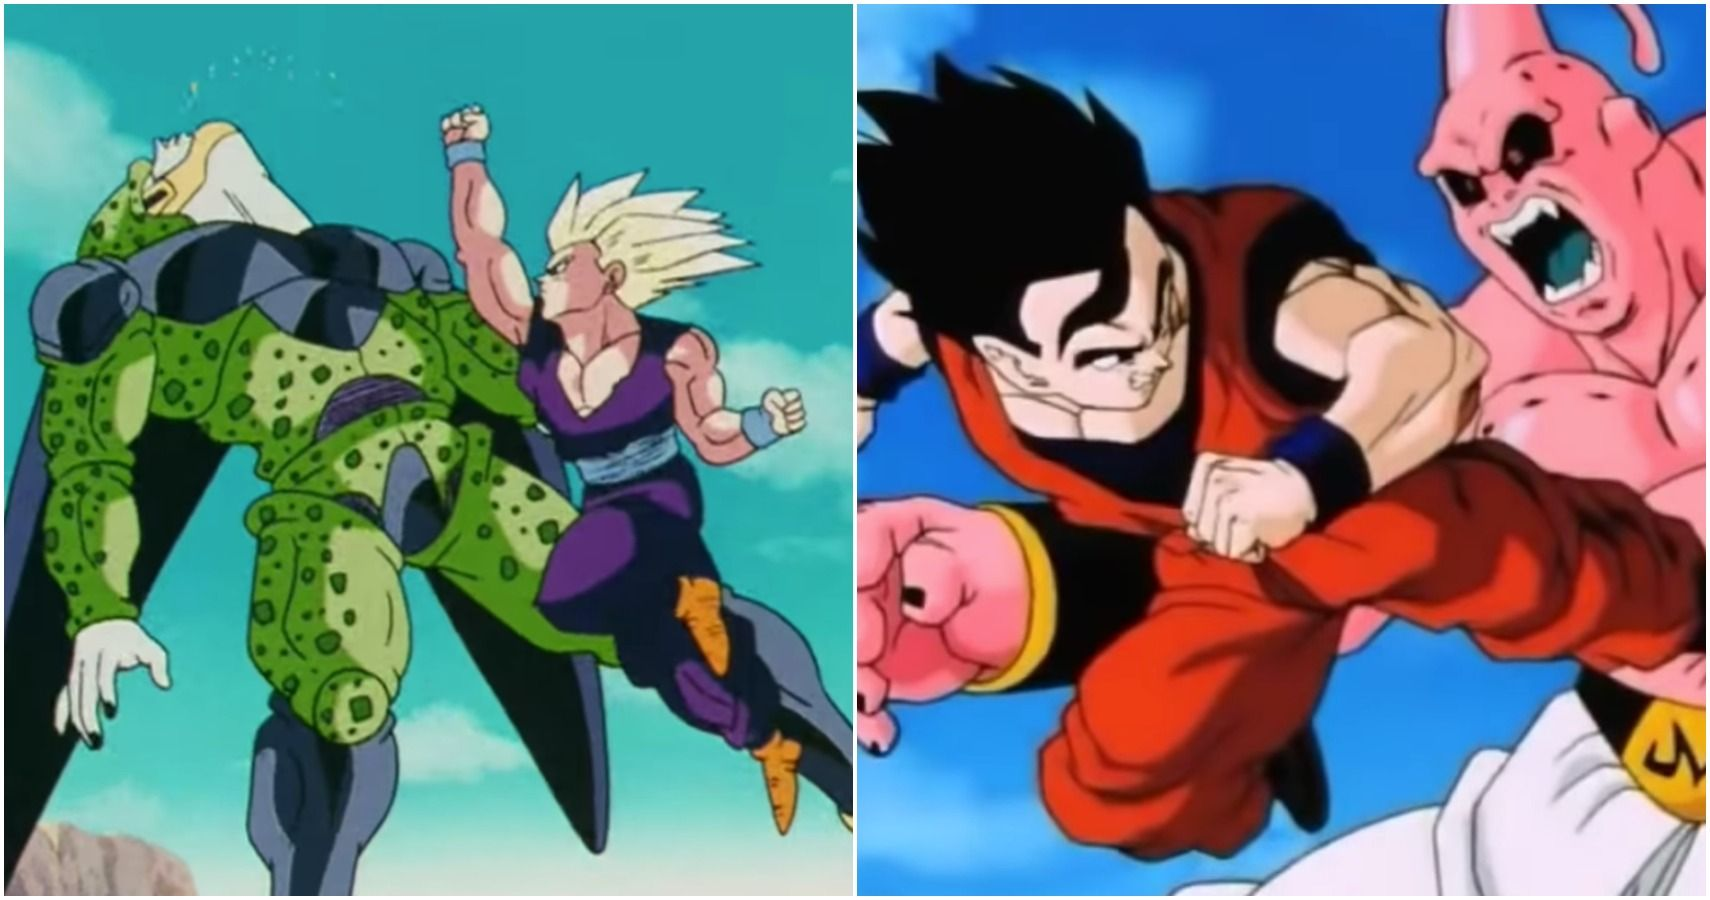 Dragon Ball: Gohan's Most Powerful Moves, Ranked According To Strength